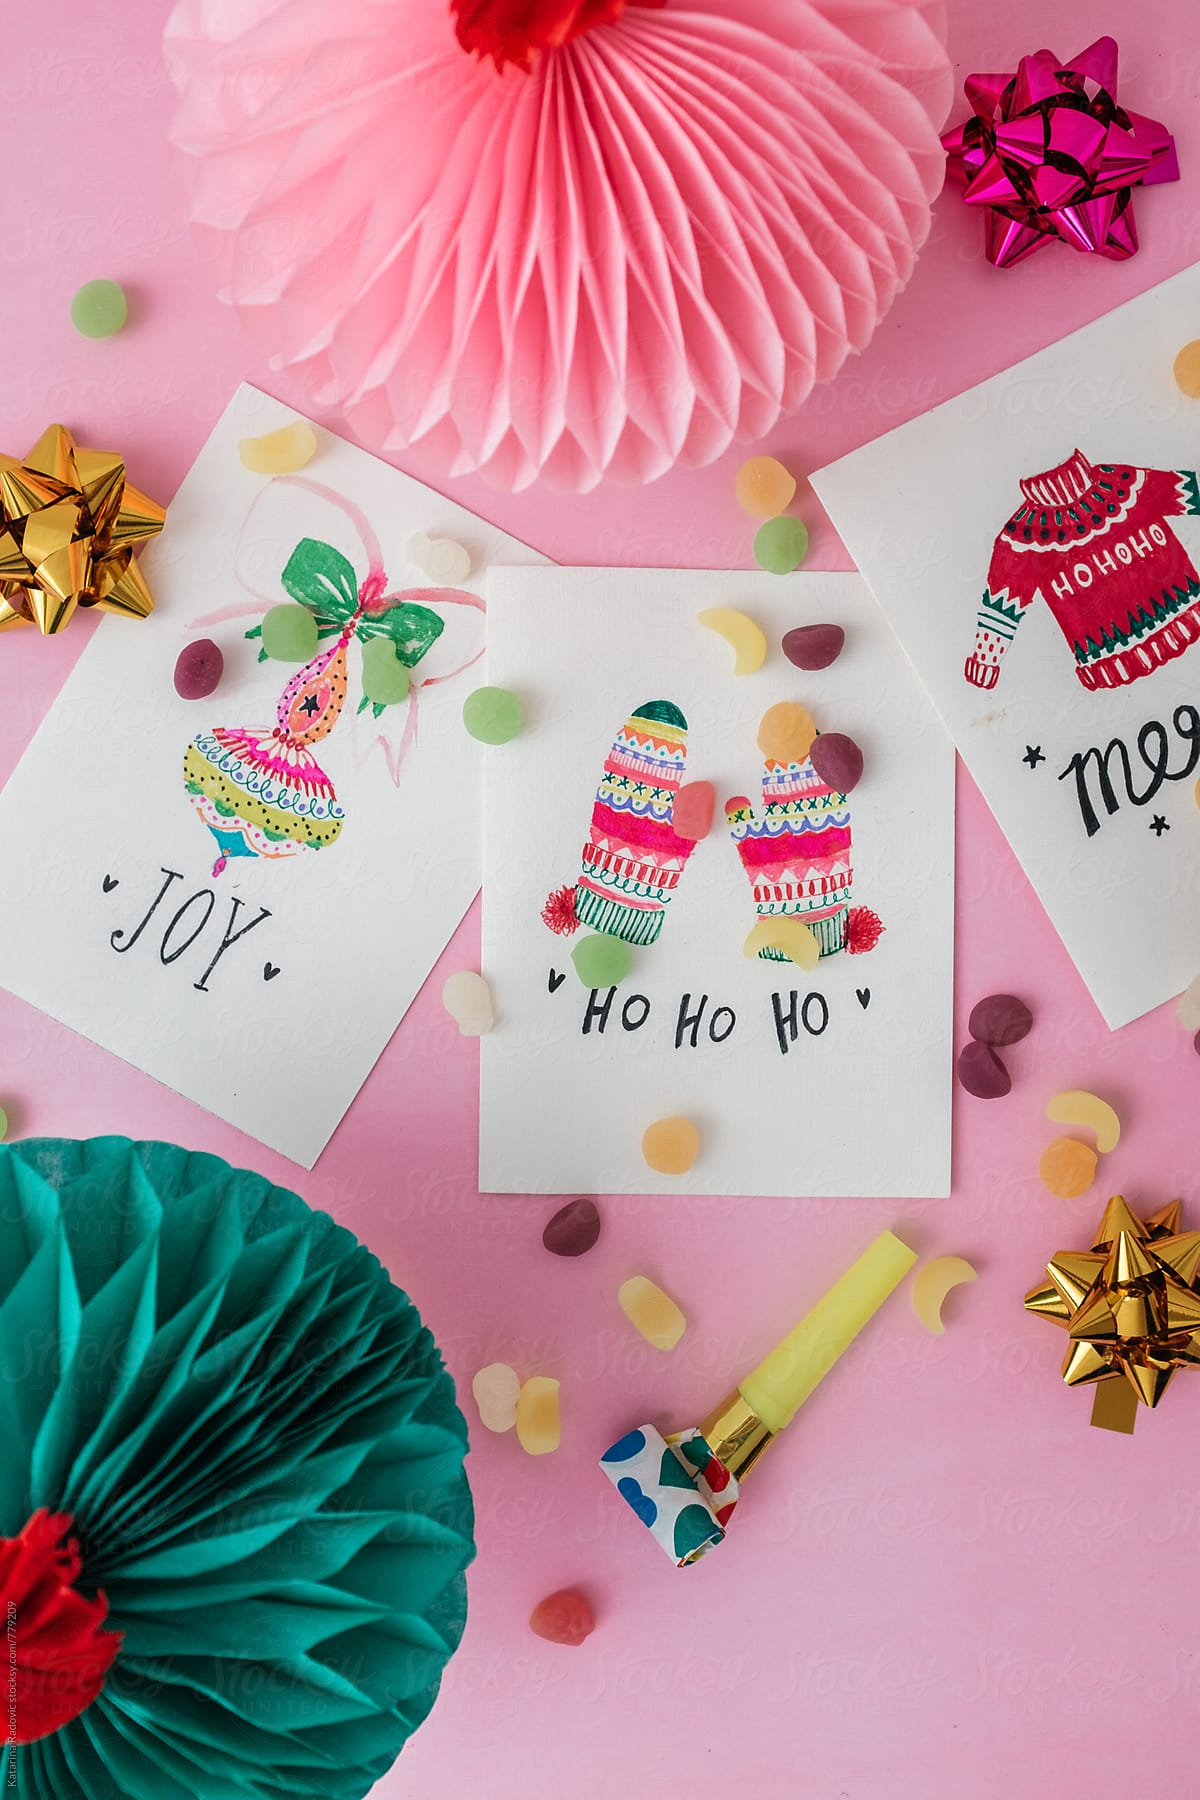 Hand Painted Christmas Cards On A Pink Background   Stocksy United